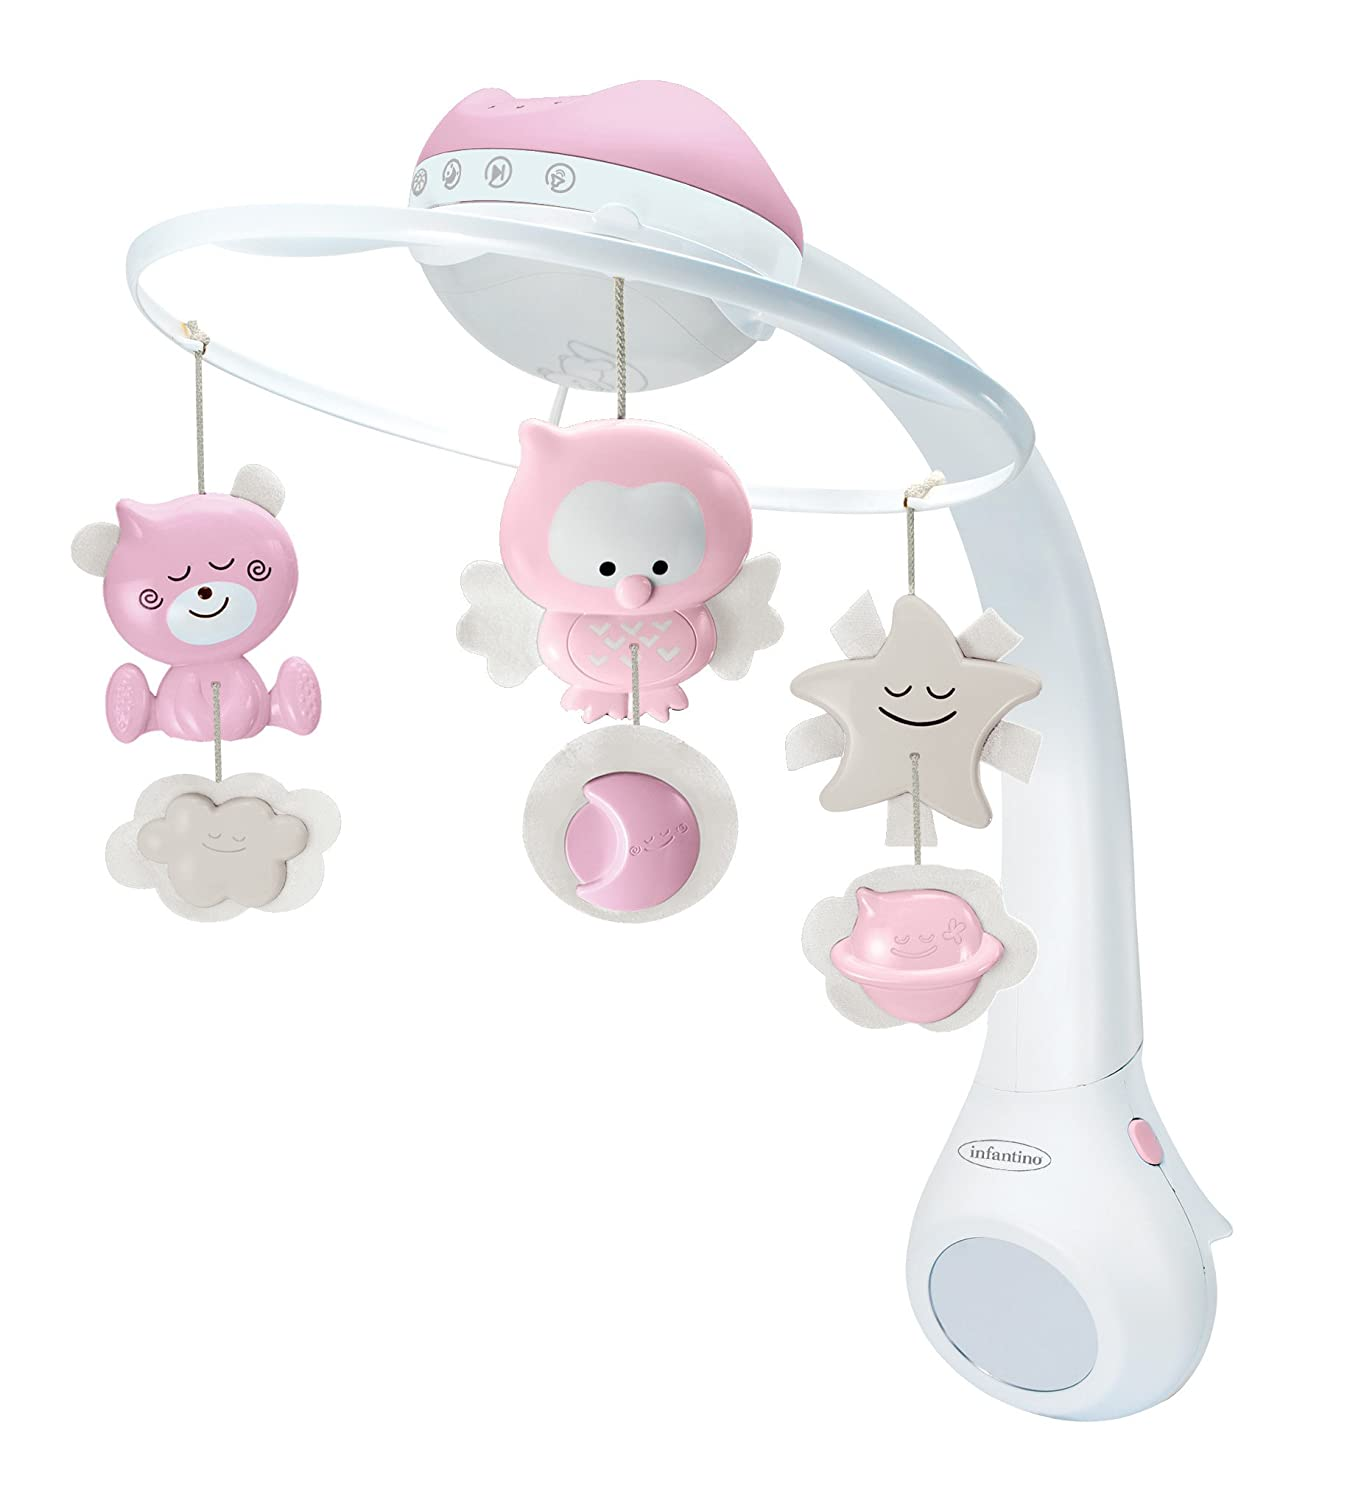 Infantino 3 in 1 Projector musical mobile, cot & table top night light, wake up mode simulates daylight, Grey 004915-03